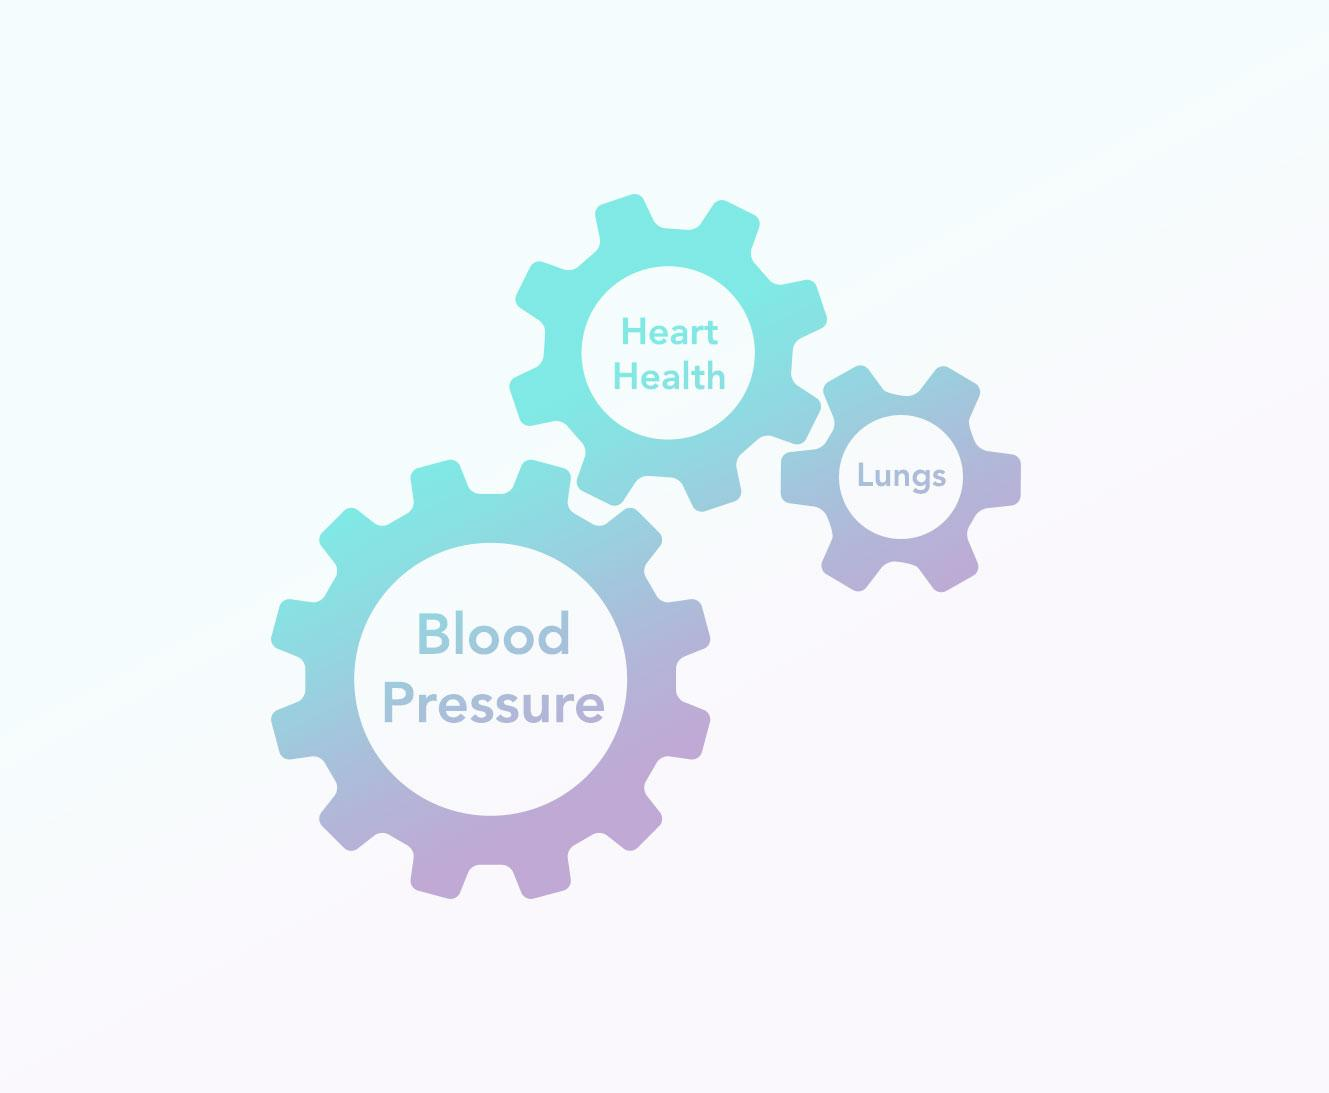 Blood Pressure, Heart Health and Lungs